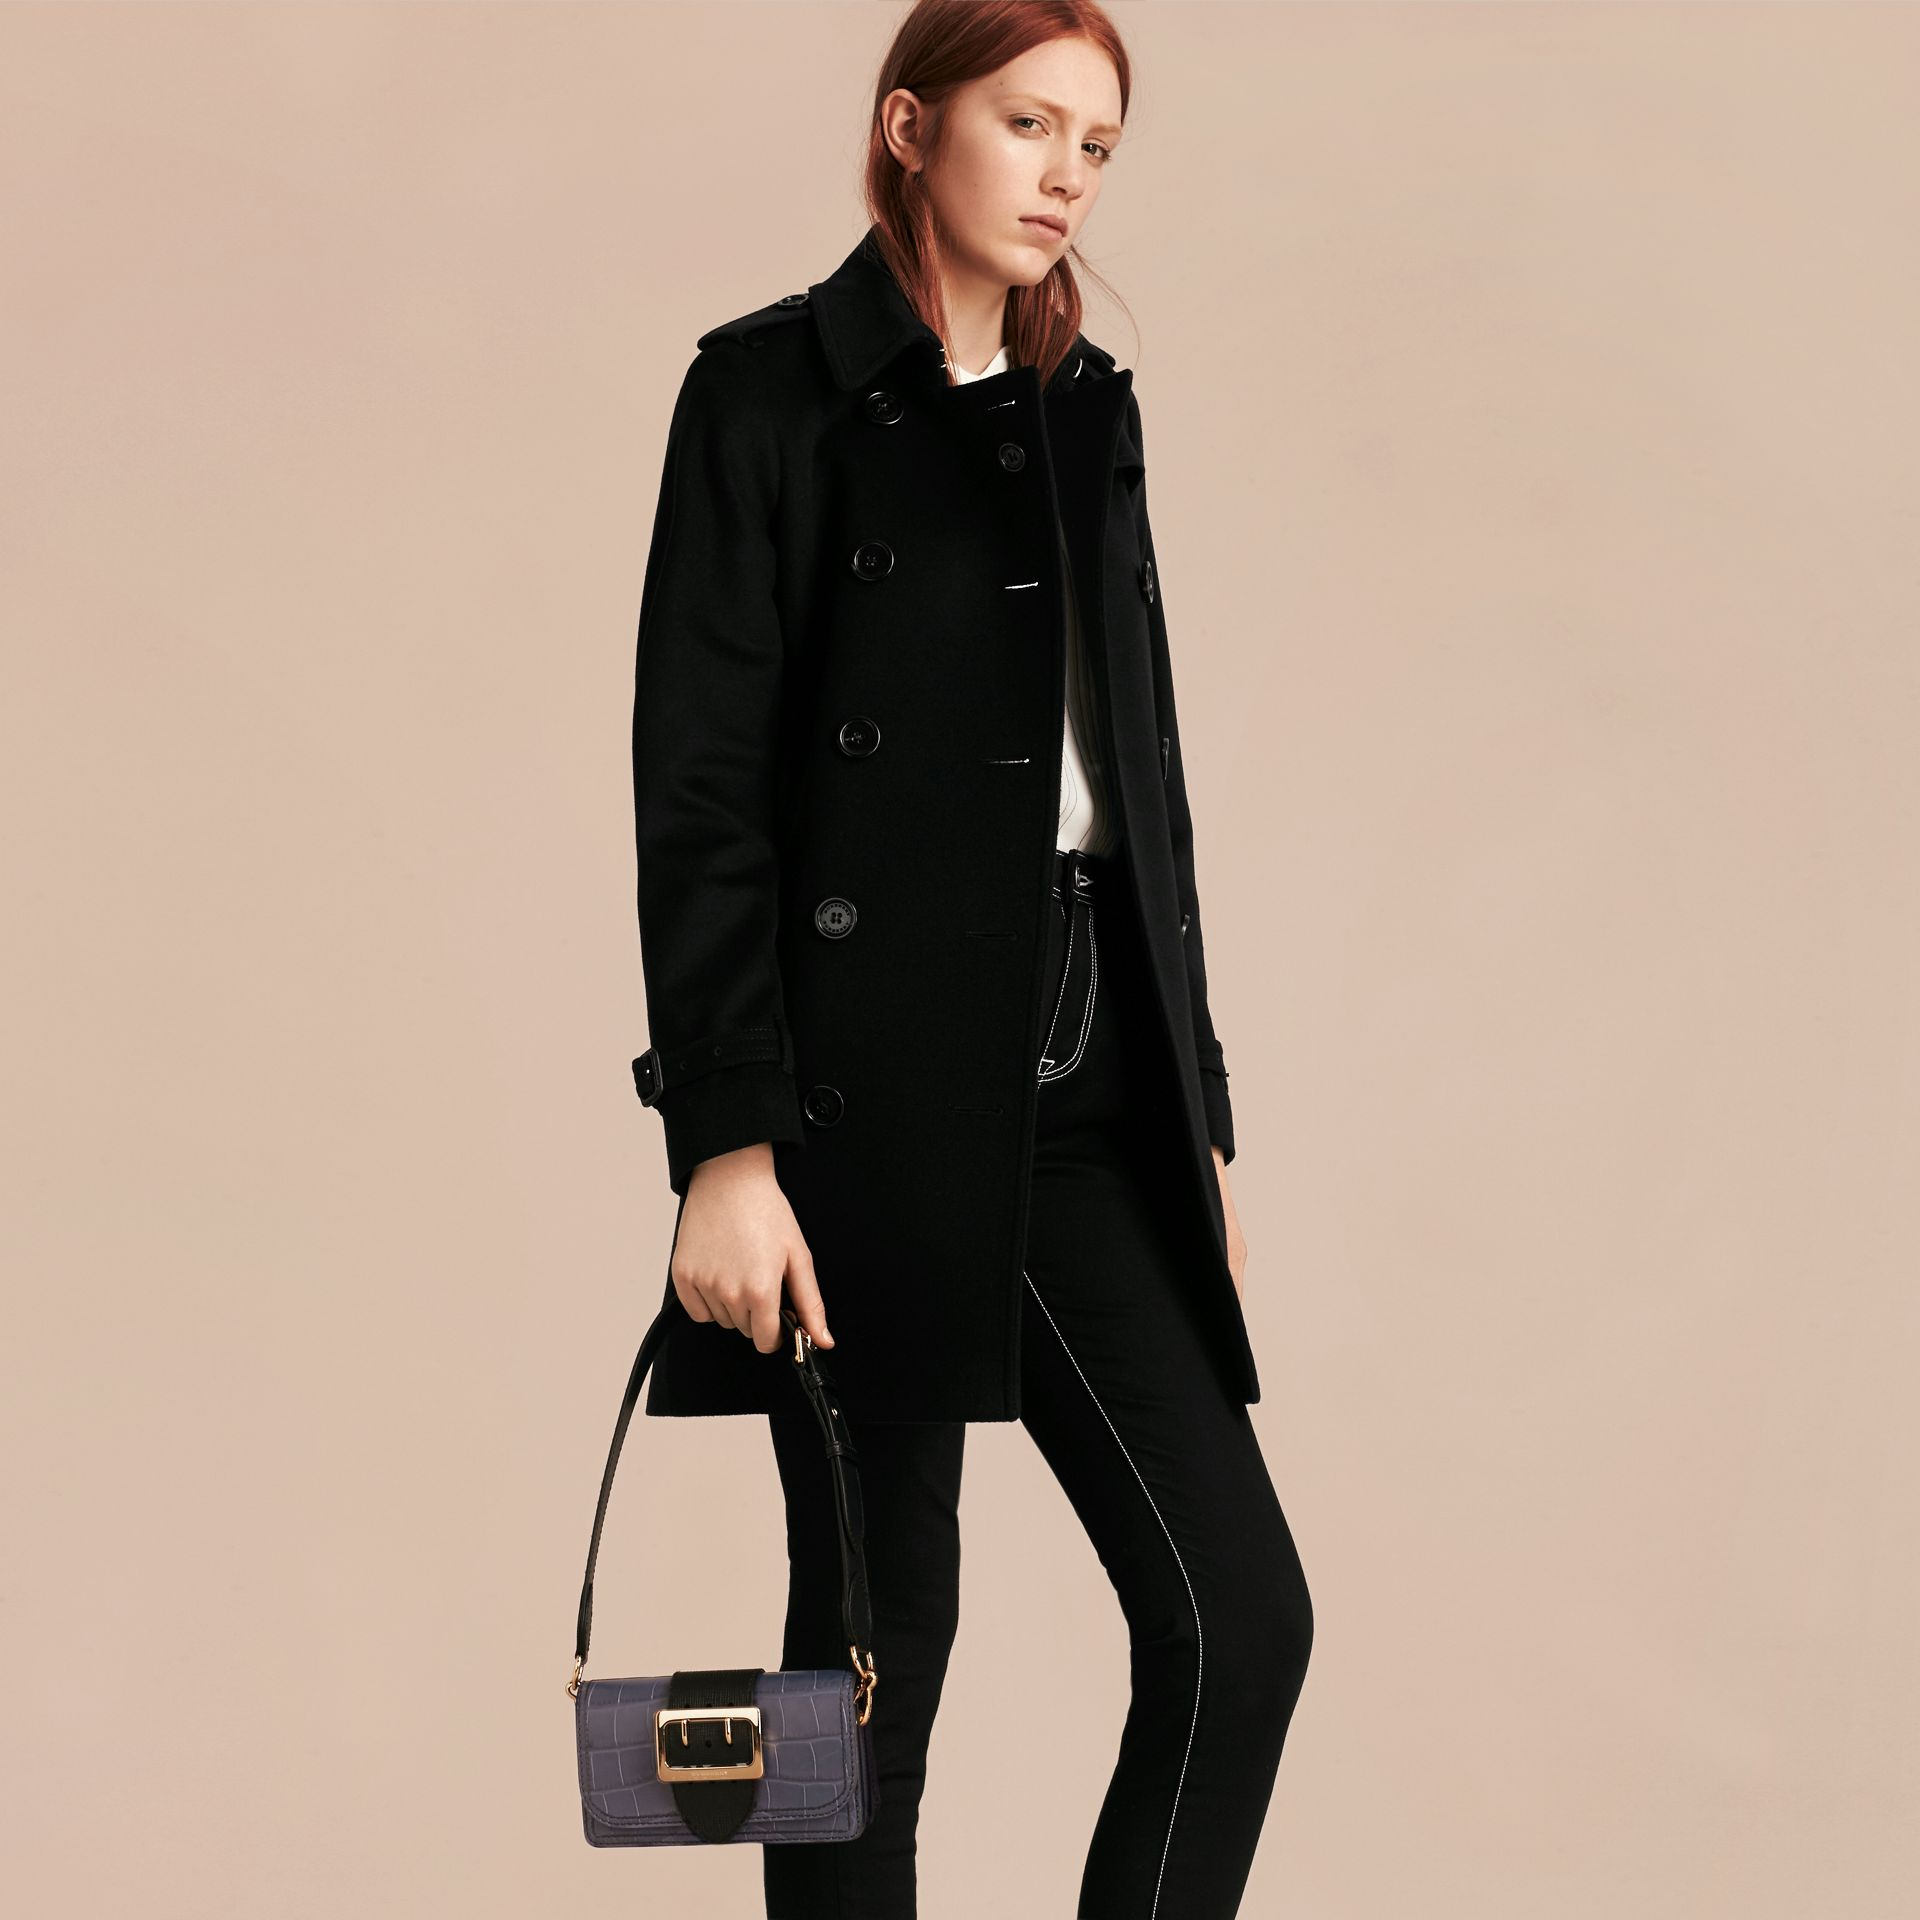 The Small Buckle Bag in Alligator and Leather in Navy / Black - Women | Burberry Canada - gallery image 3